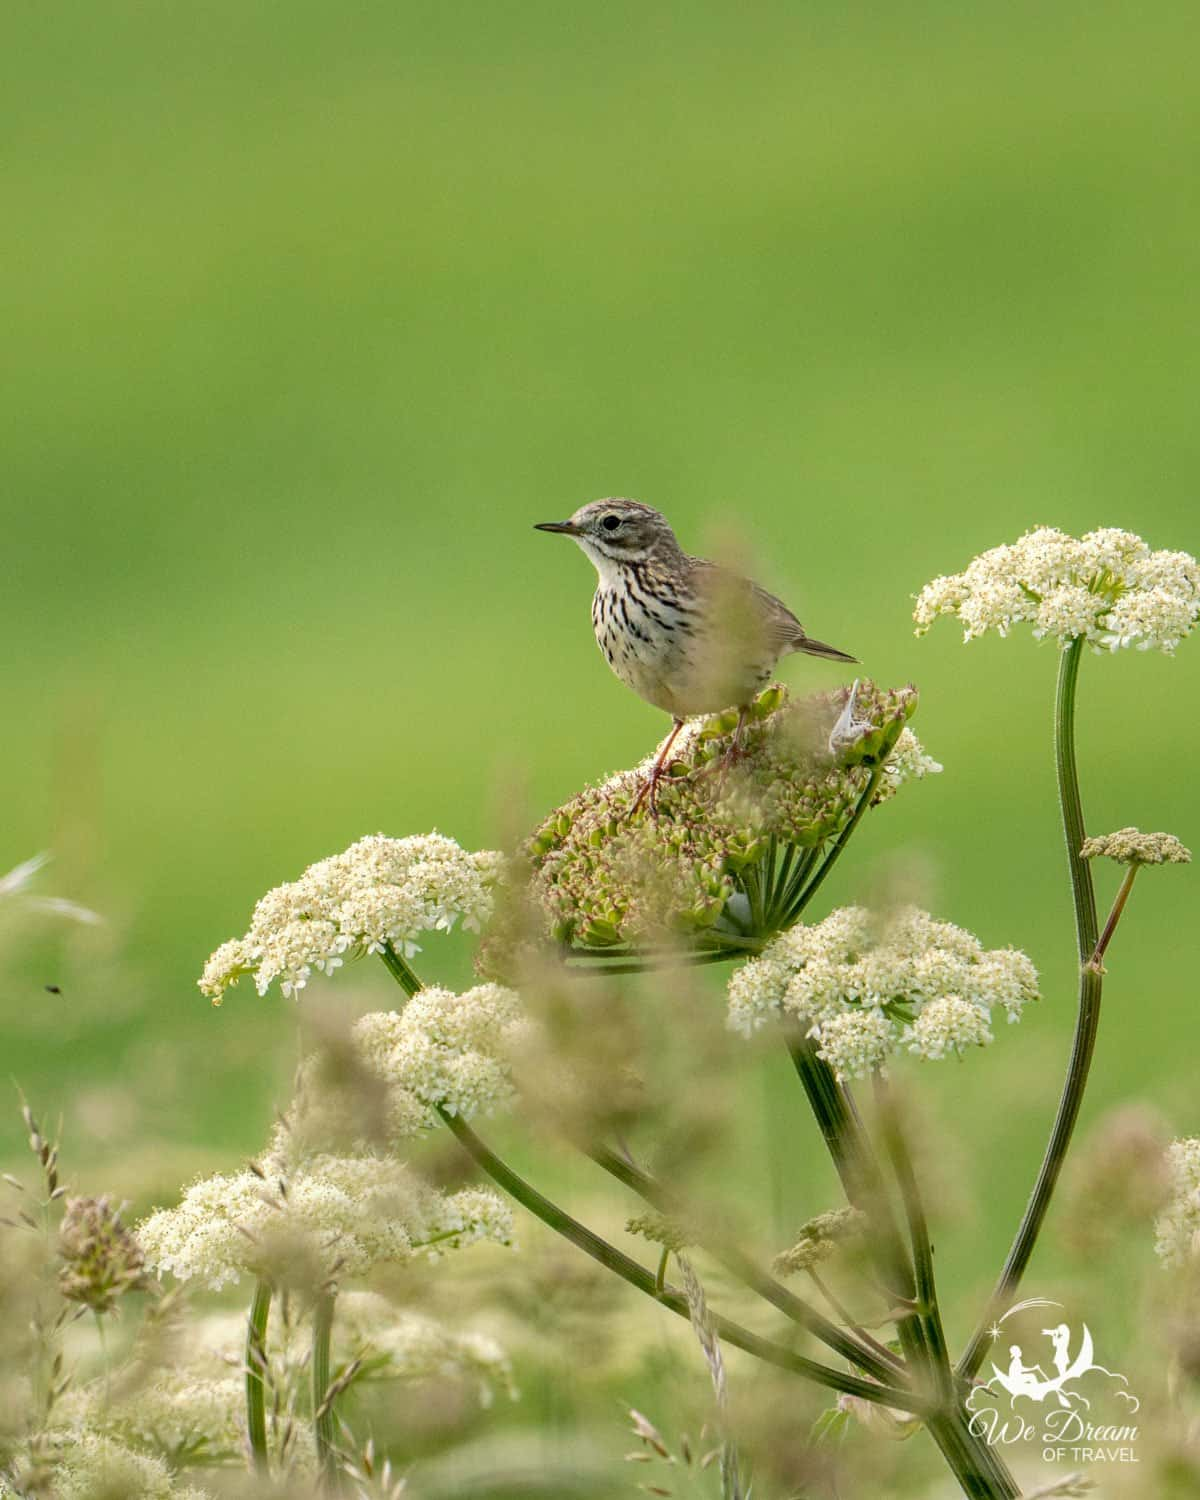 A meadow pipit at RSPB Bempton Cliffs in Yorkshire